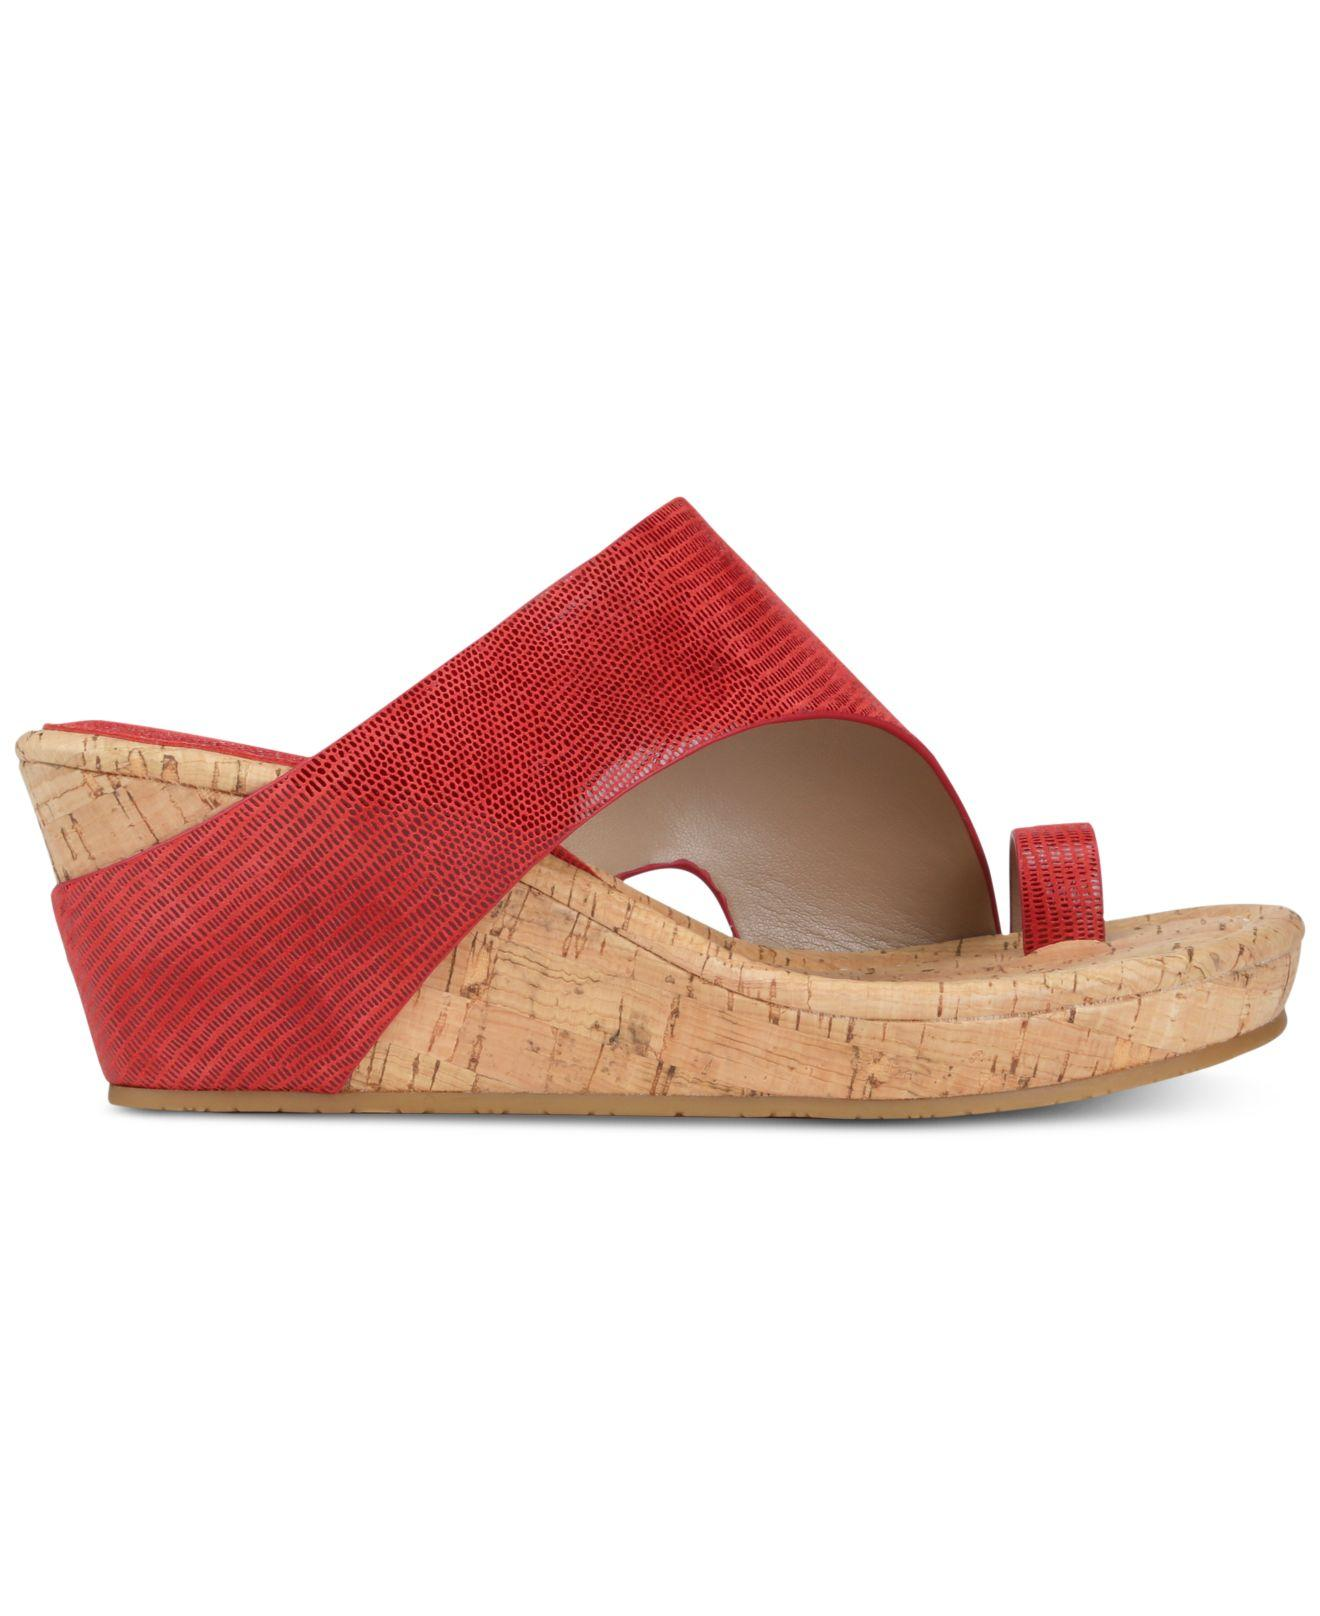 4f8ae31ef5ac Lyst - Donald J Pliner Gyer Wedge Sandals in Red - Save 8%